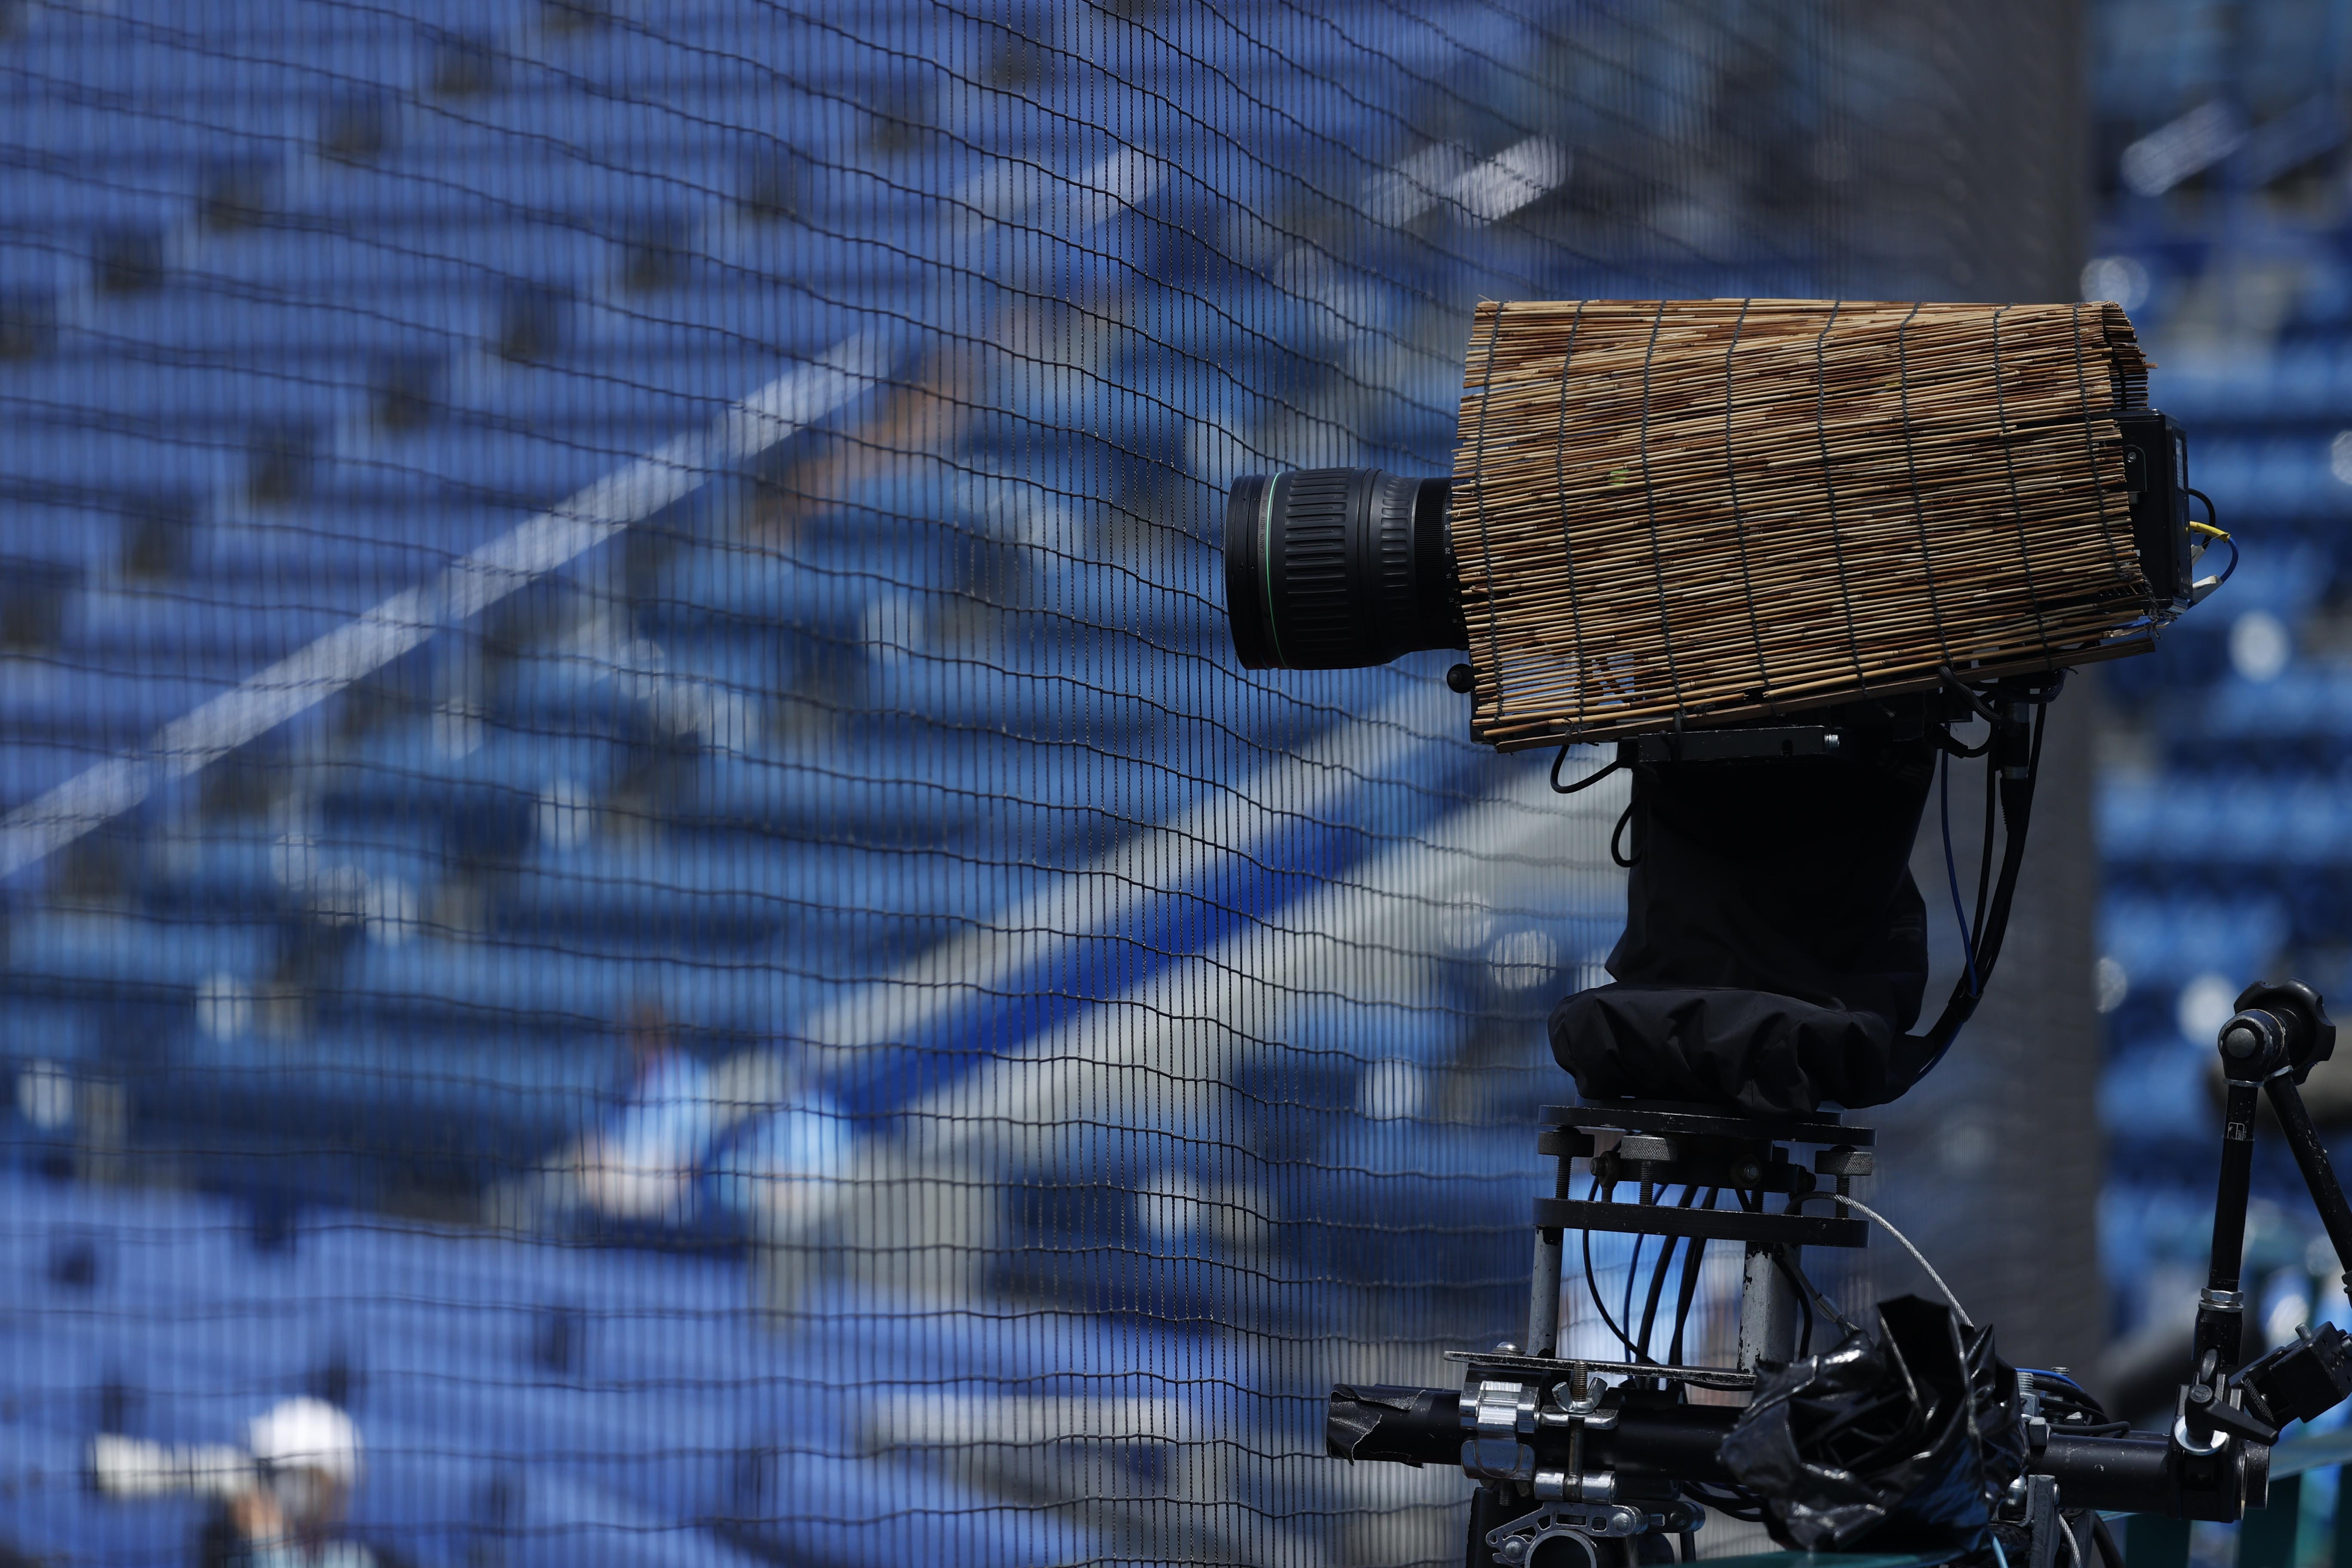 Aug 4, 2021; Yokohama, Japan; A camera is shielded from the heat by a straw cover in a baseball repechage contest between Dominican Republic and USA during the Tokyo 2020 Olympic Summer Games at Yokohama Baseball Stadium. Mandatory Credit: Yukihito Taguchi-USA TODAY Sports